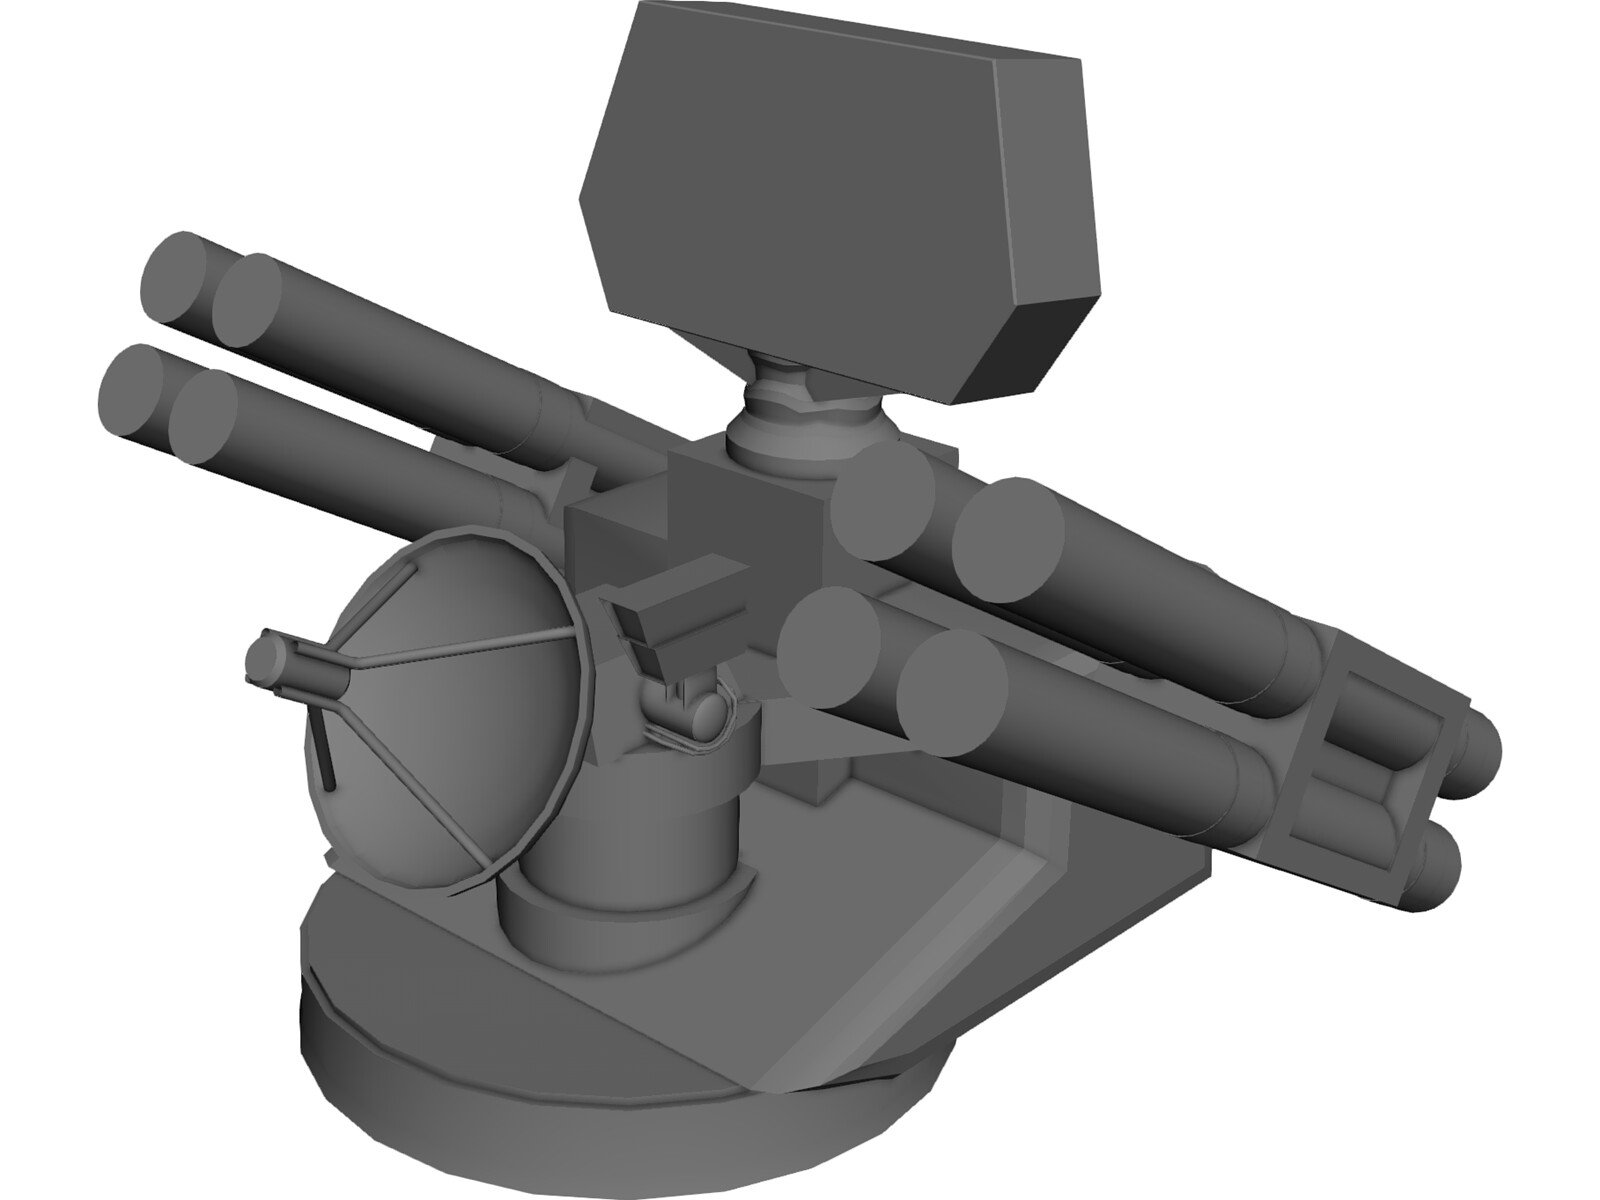 French Crotale Surface to Air Missile Launcher